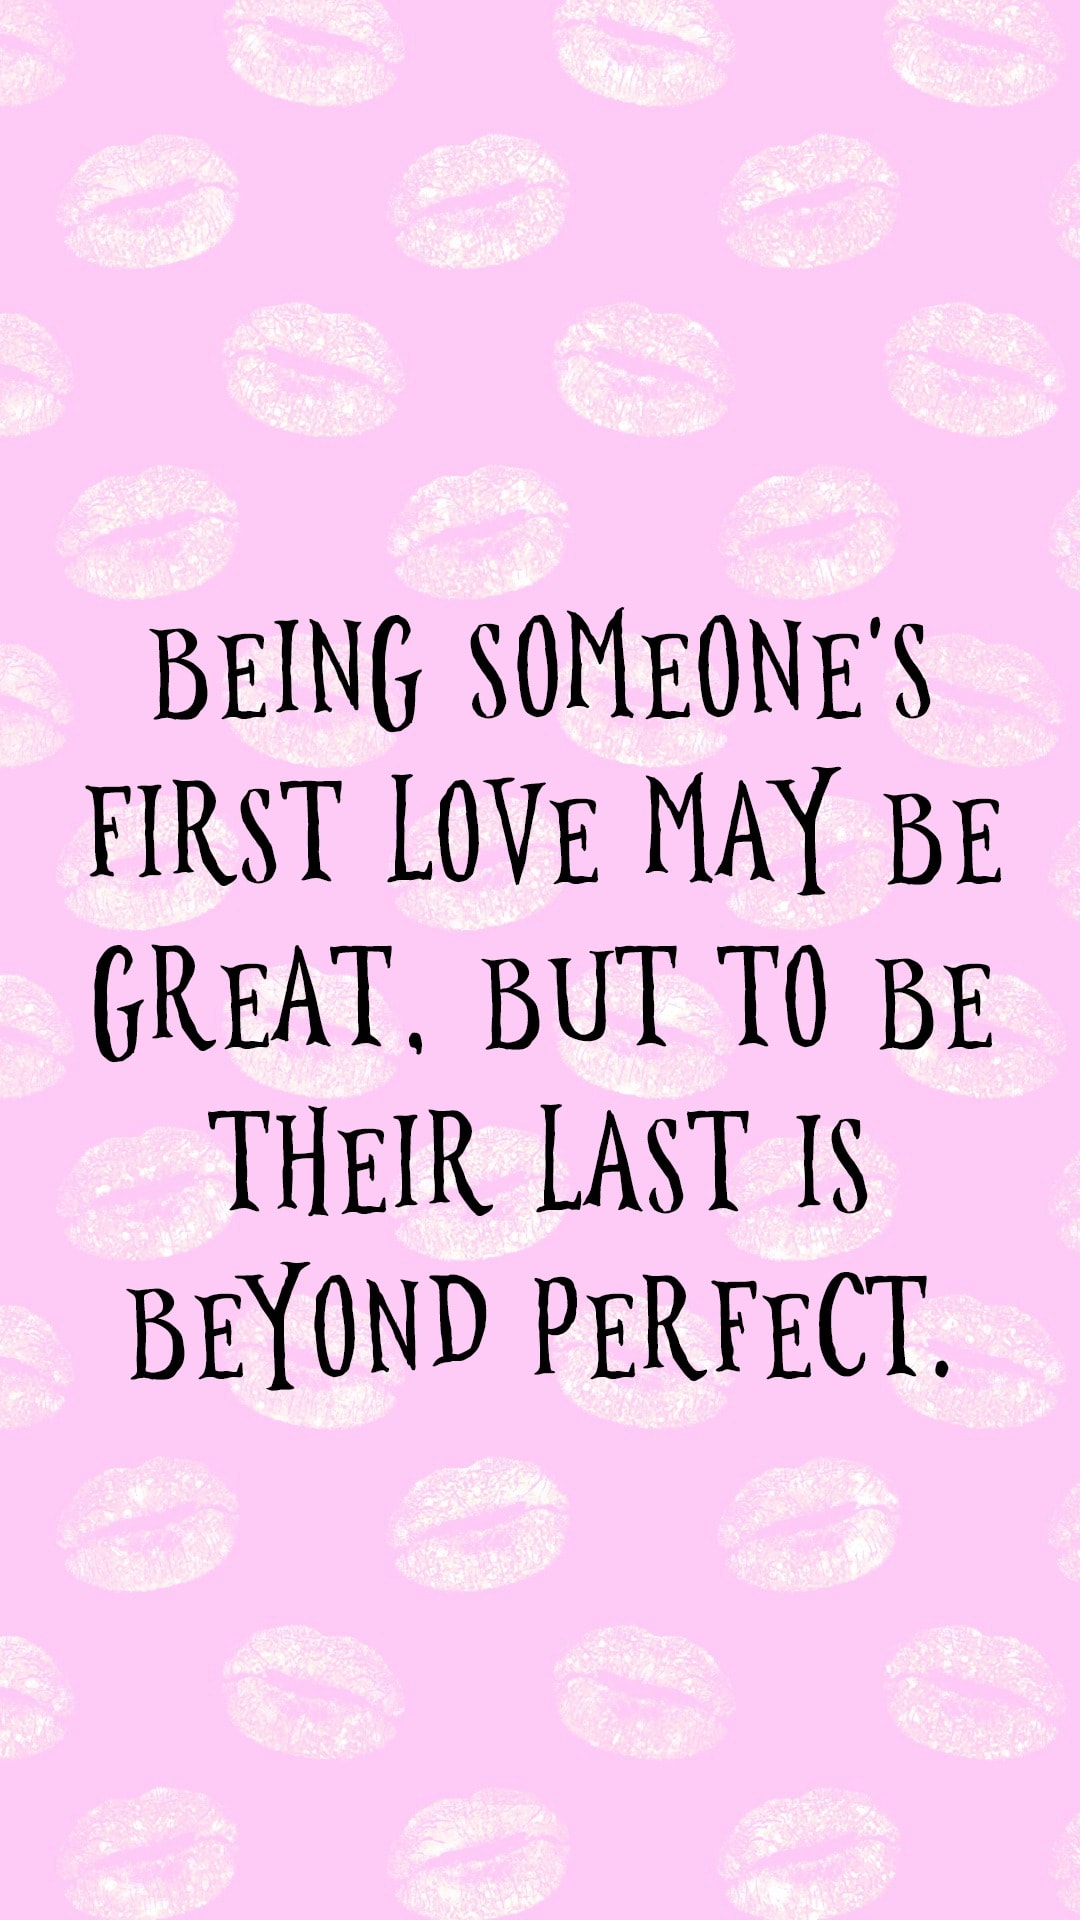 Bing someone's first love may be great, but to be their last is beyond perfect.